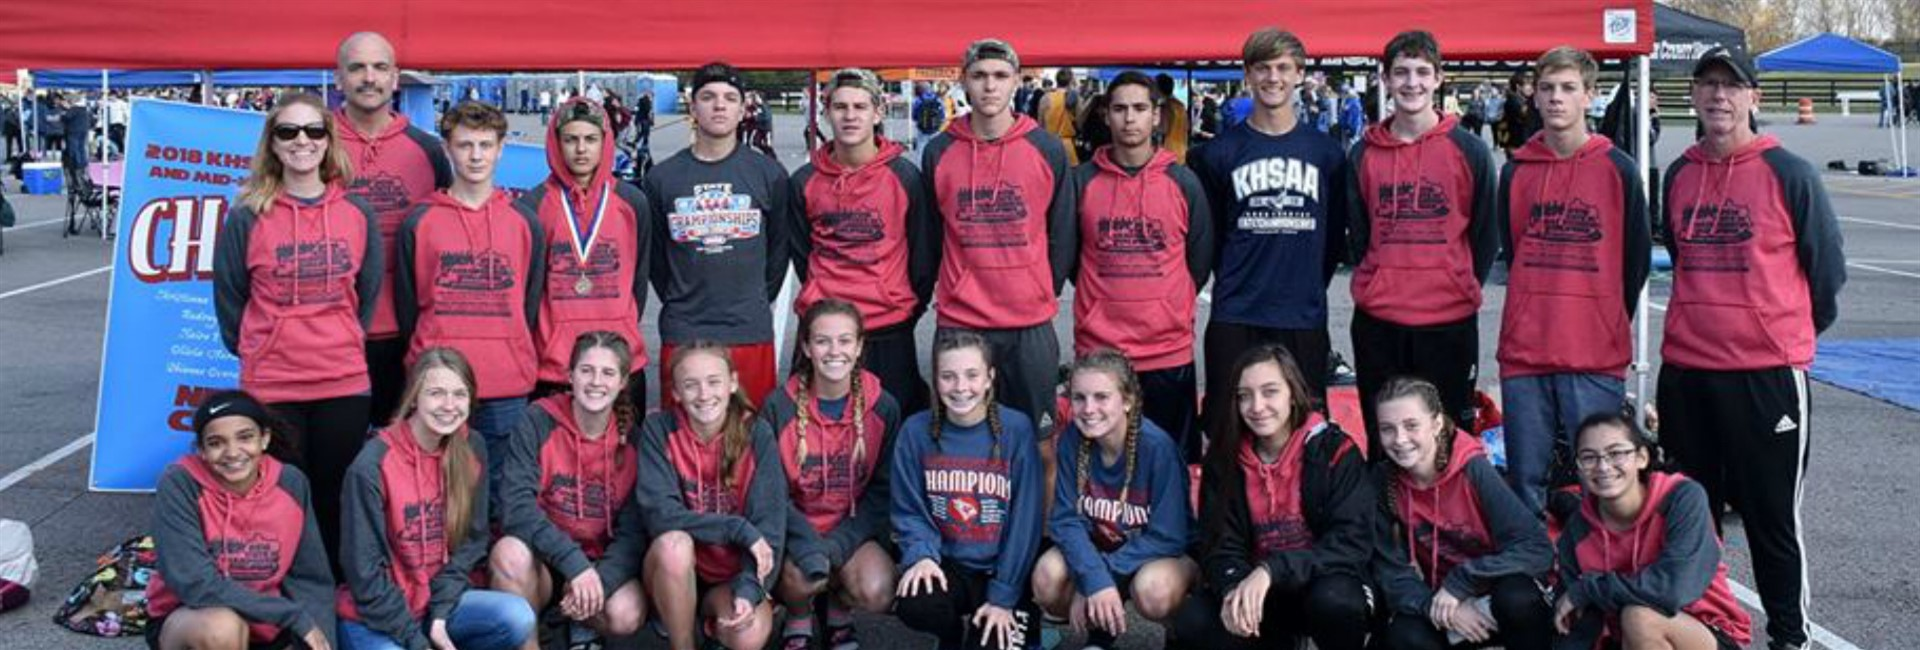 NCHS Cross Country Team